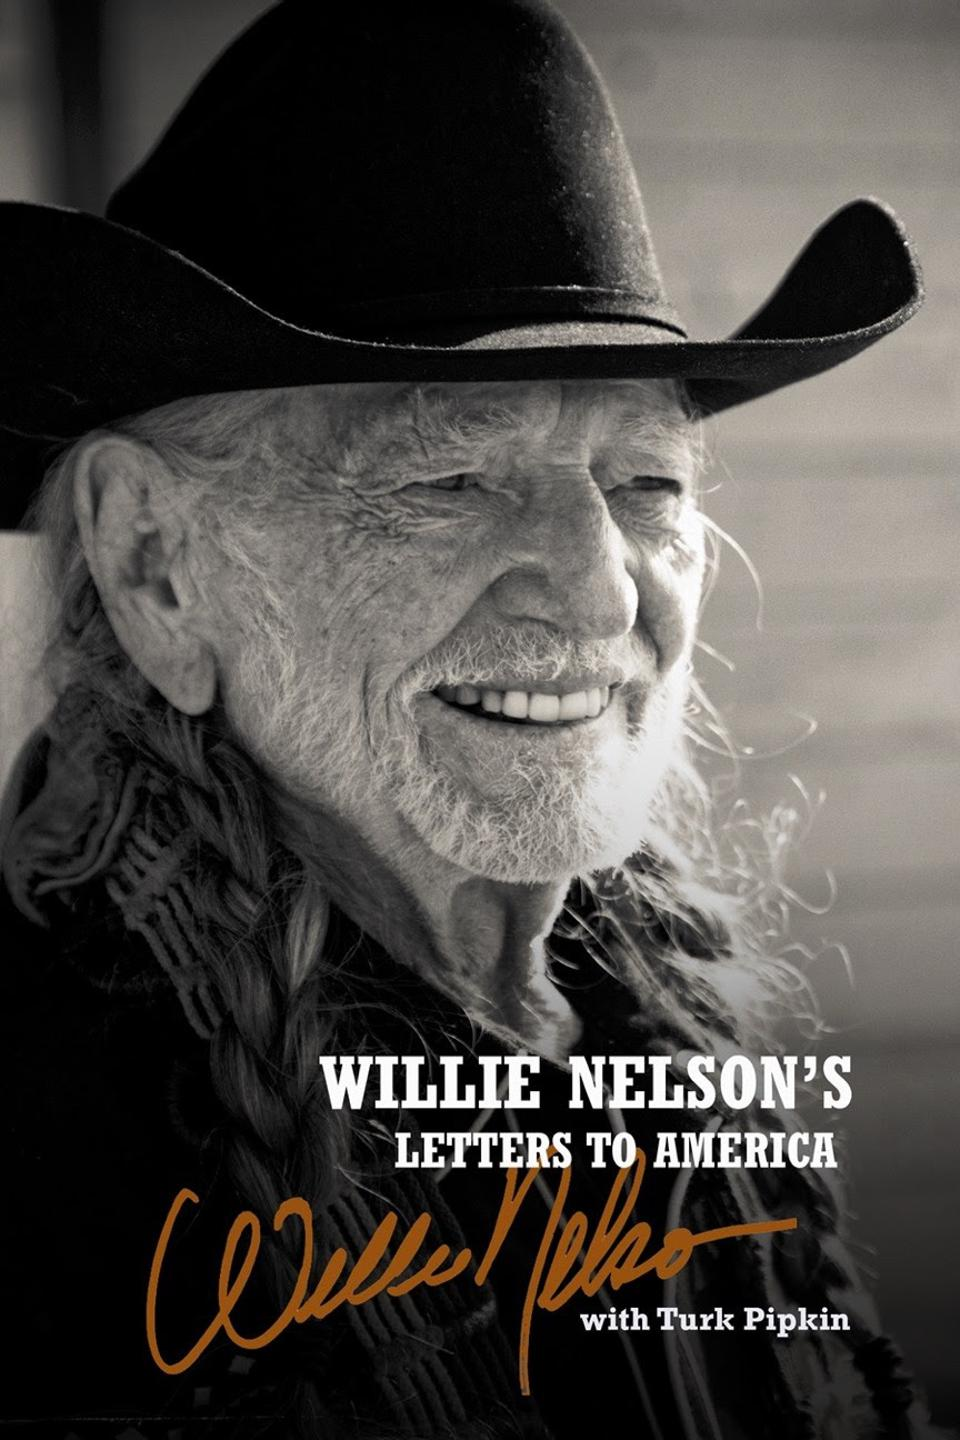 The cover of Willie Nelson's Letters to America.